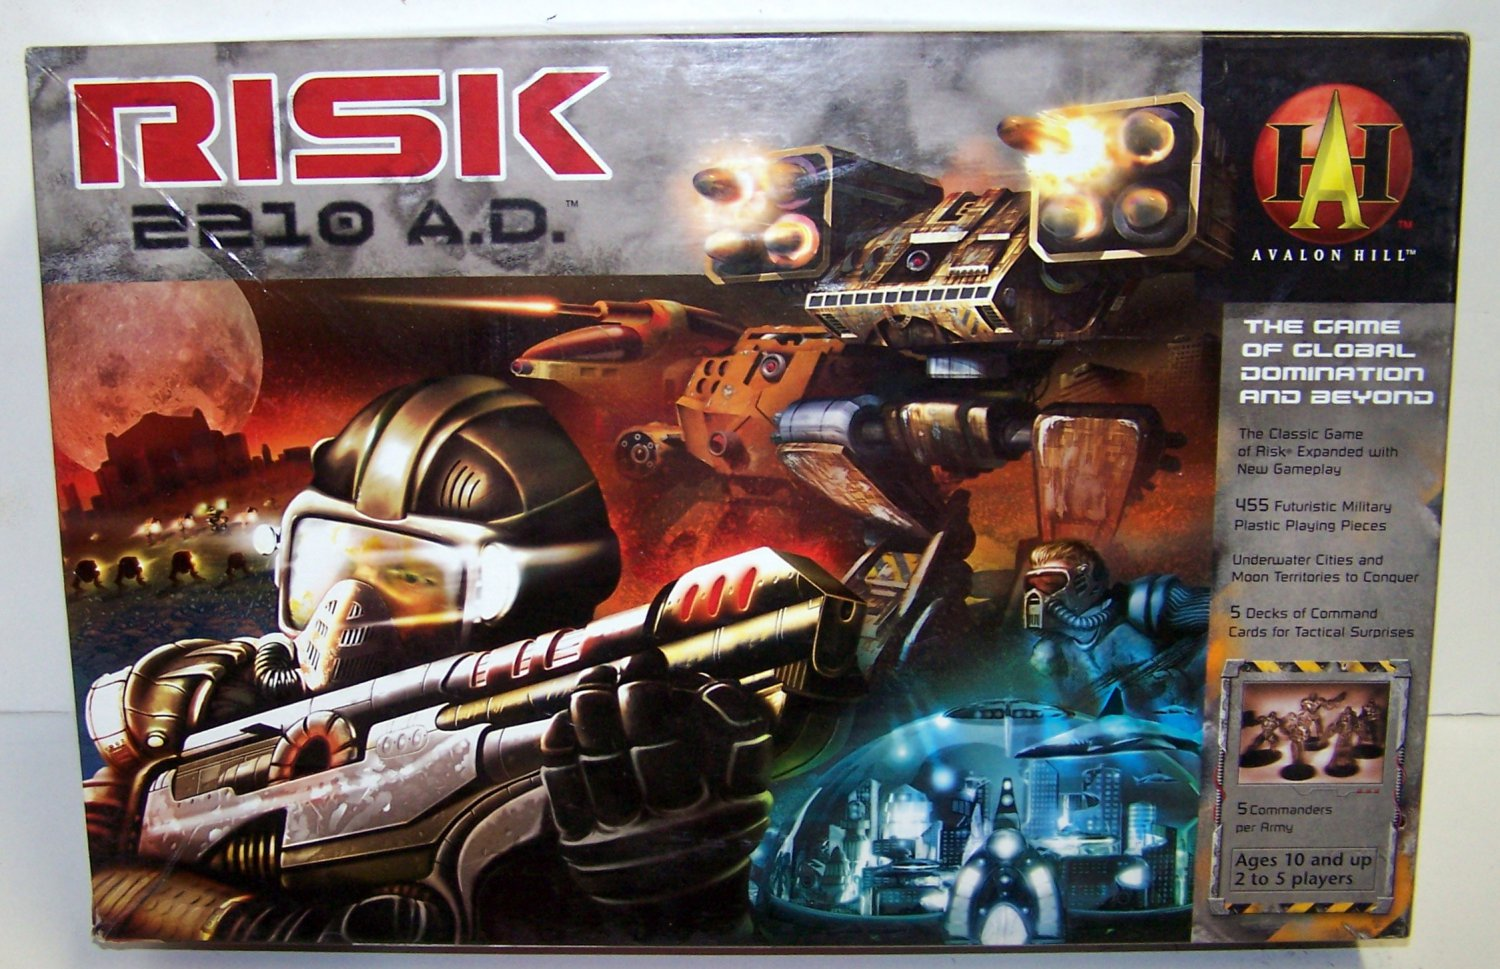 Risk 2210 AD by Avalon Hill - Resealed